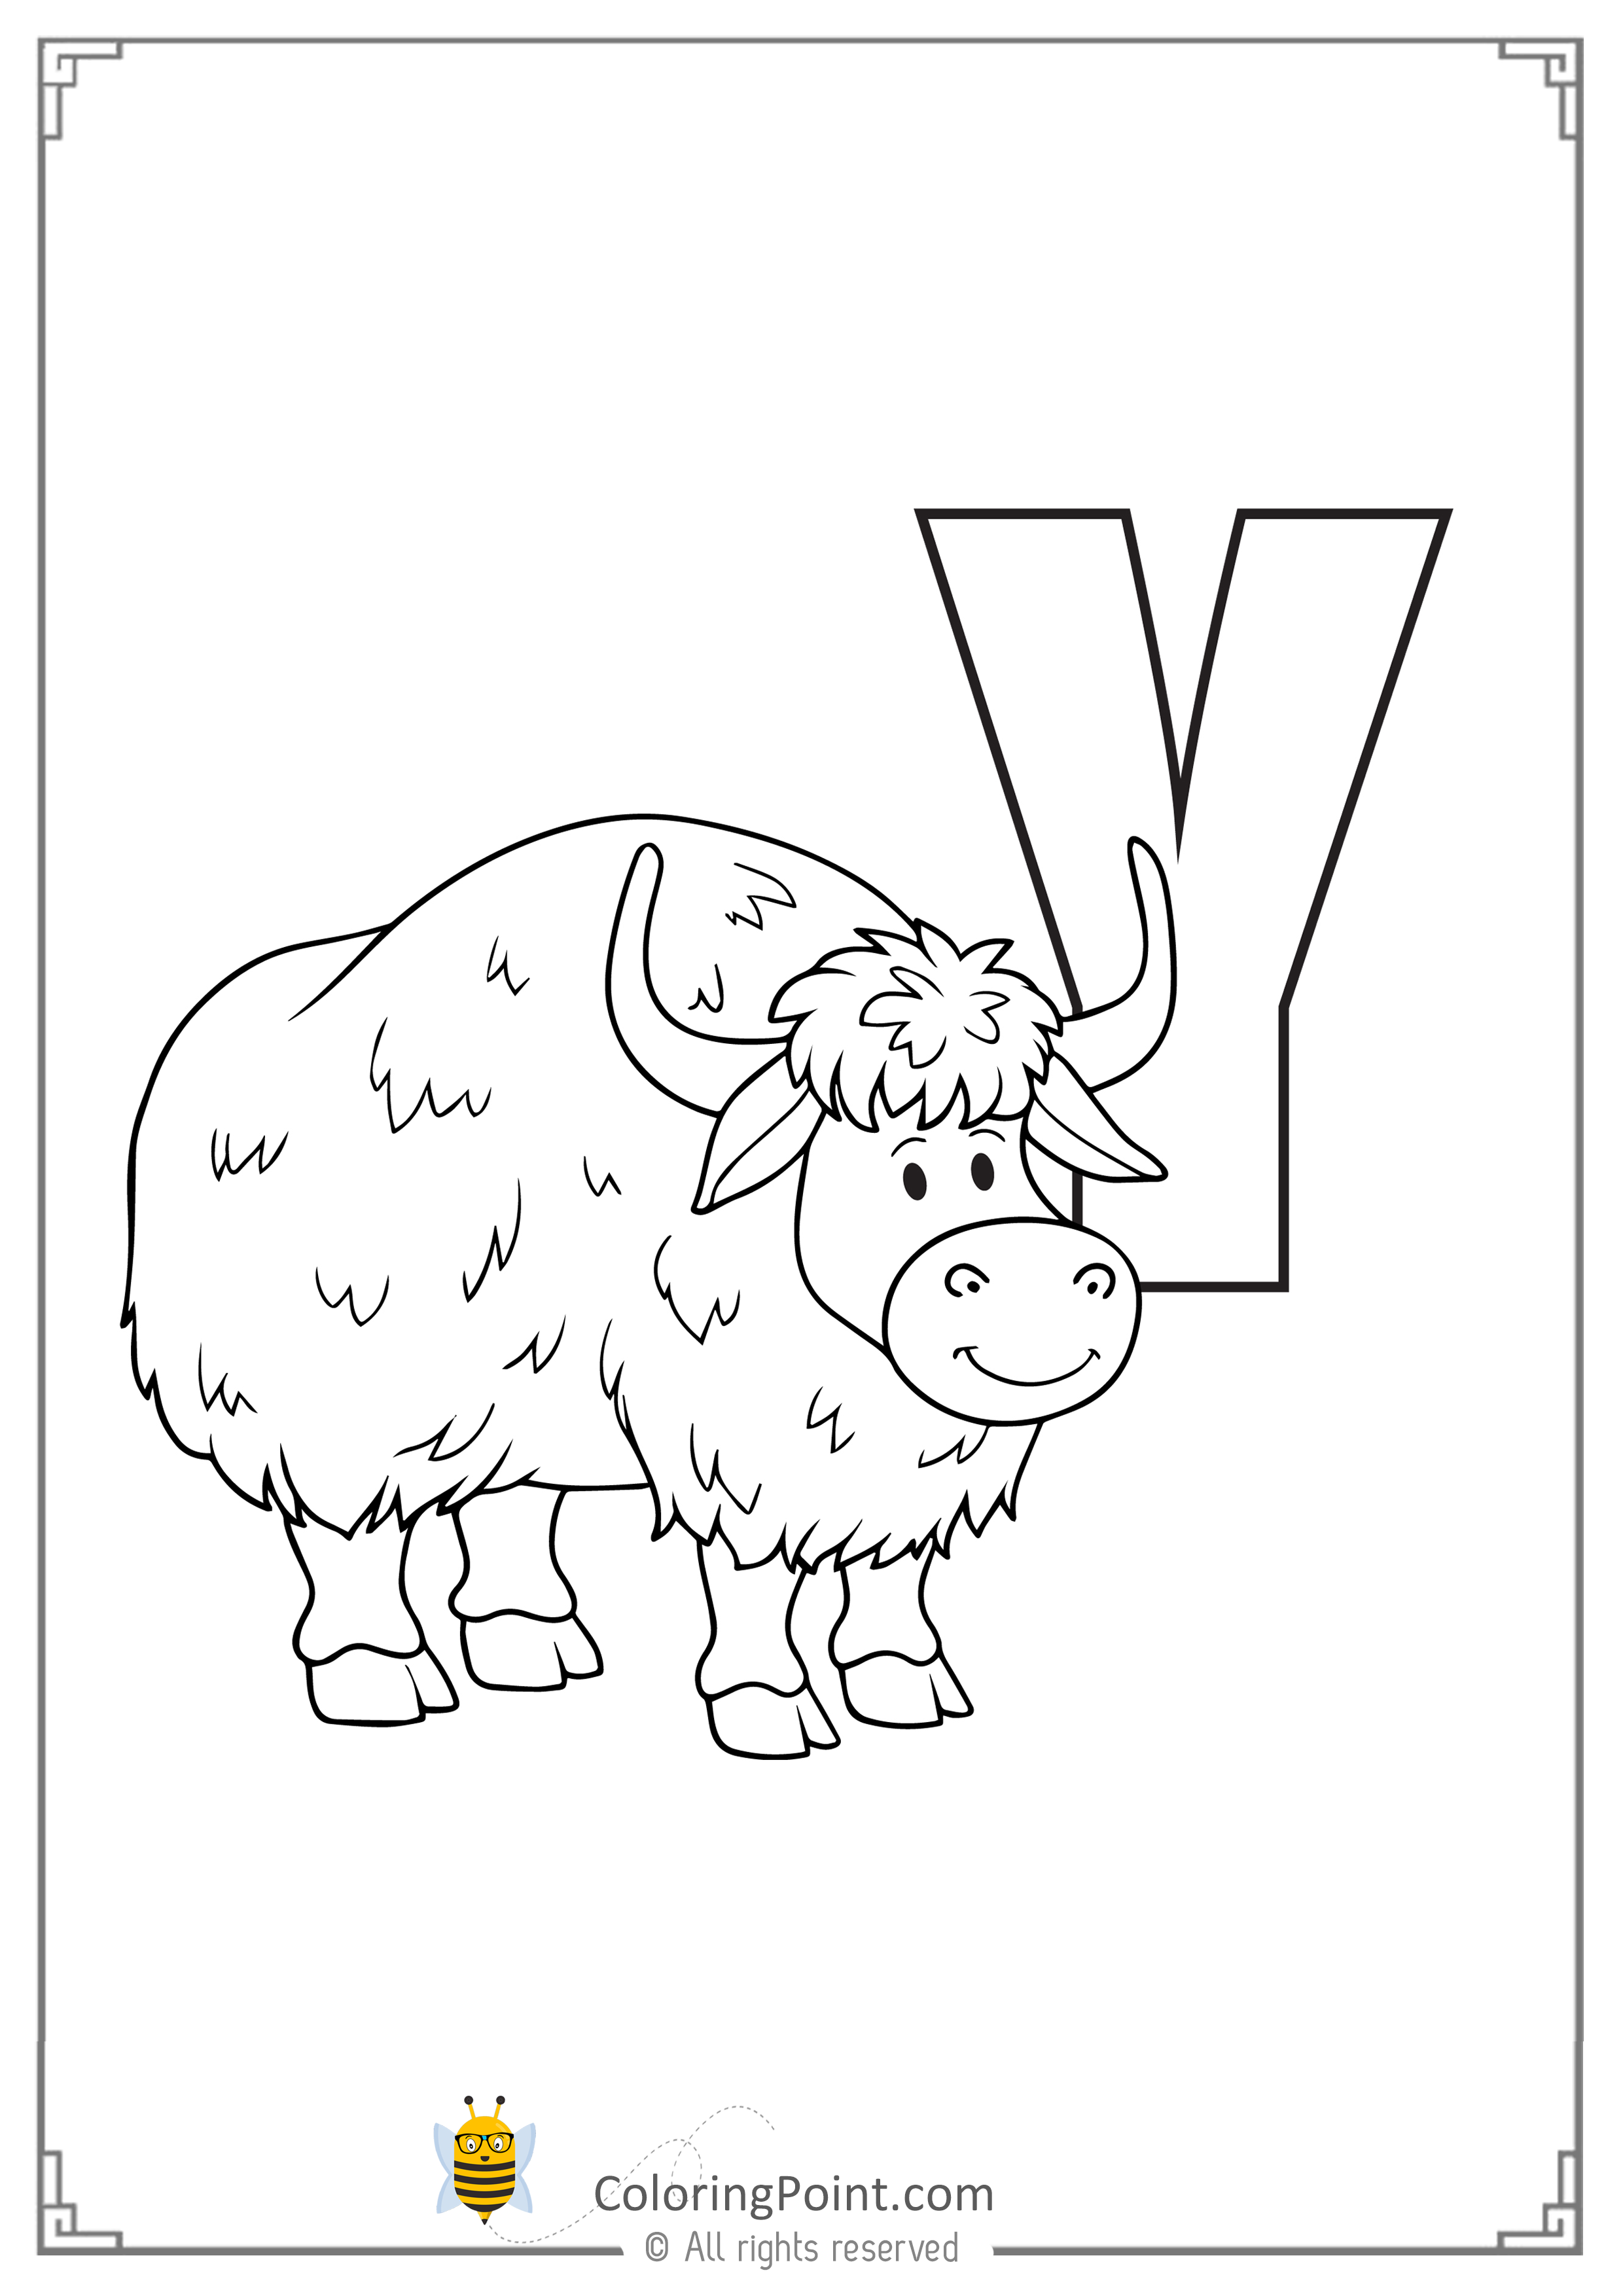 Printable Animal Alphabet Worksheets Letter Y Is For Yak